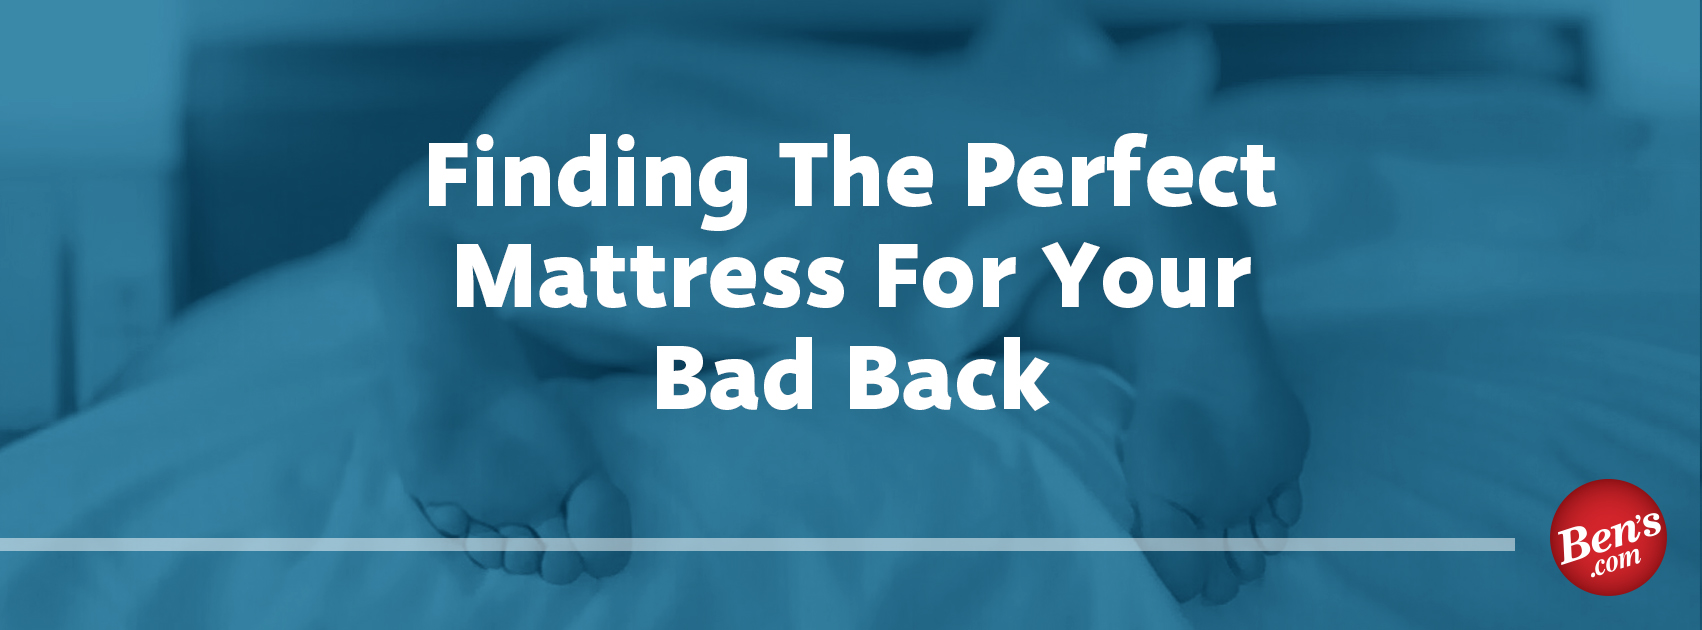 Finding The Perfect Mattress For Your Bad Back